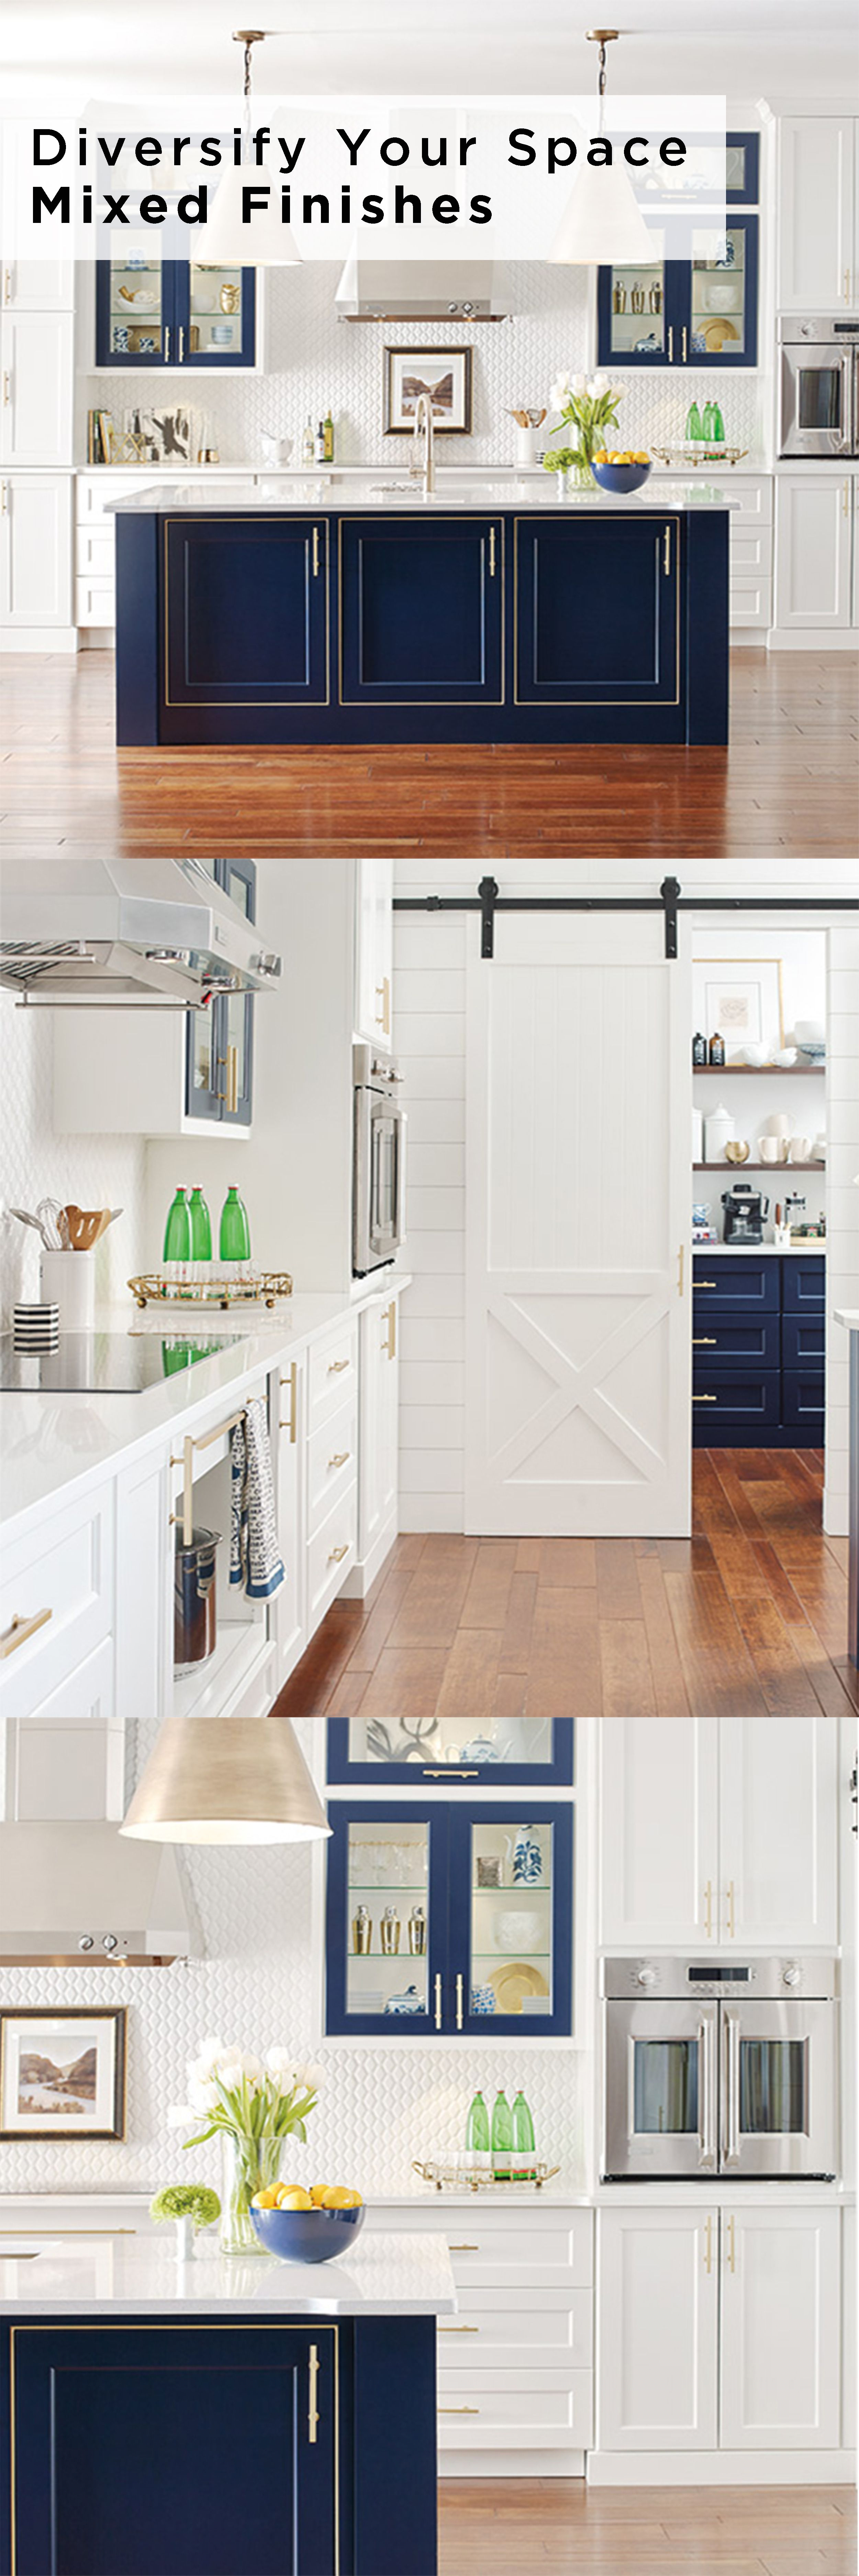 A Mix Of Finishes Showcase The Design This Renner Door Style Omega In Pure White And Custom Blue Finish Work To Dramatize Accentuate Space